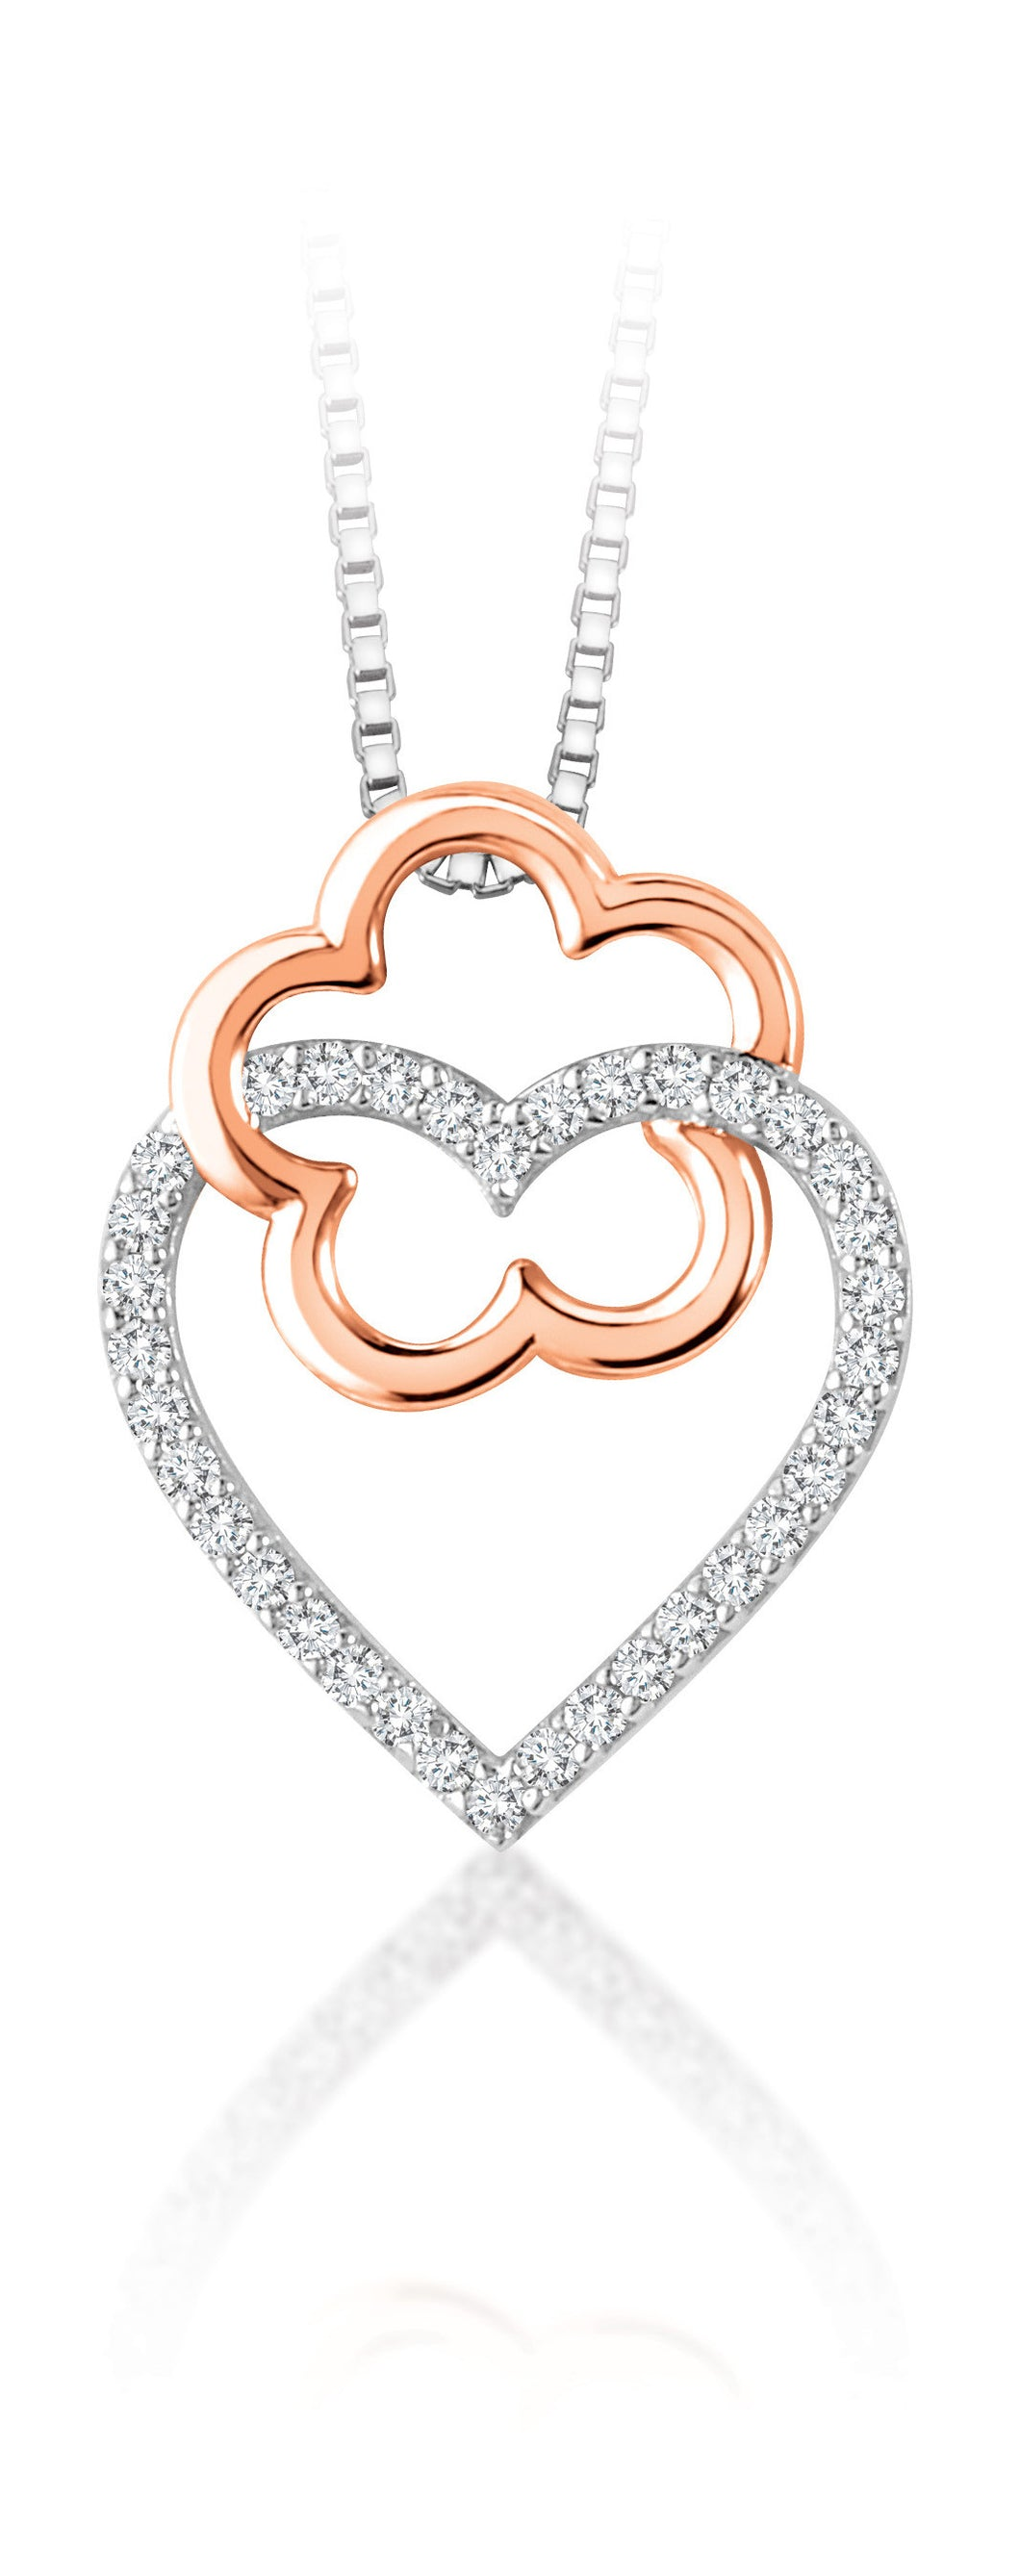 10Kt White Gold Diamond Heart Shaped Pendant